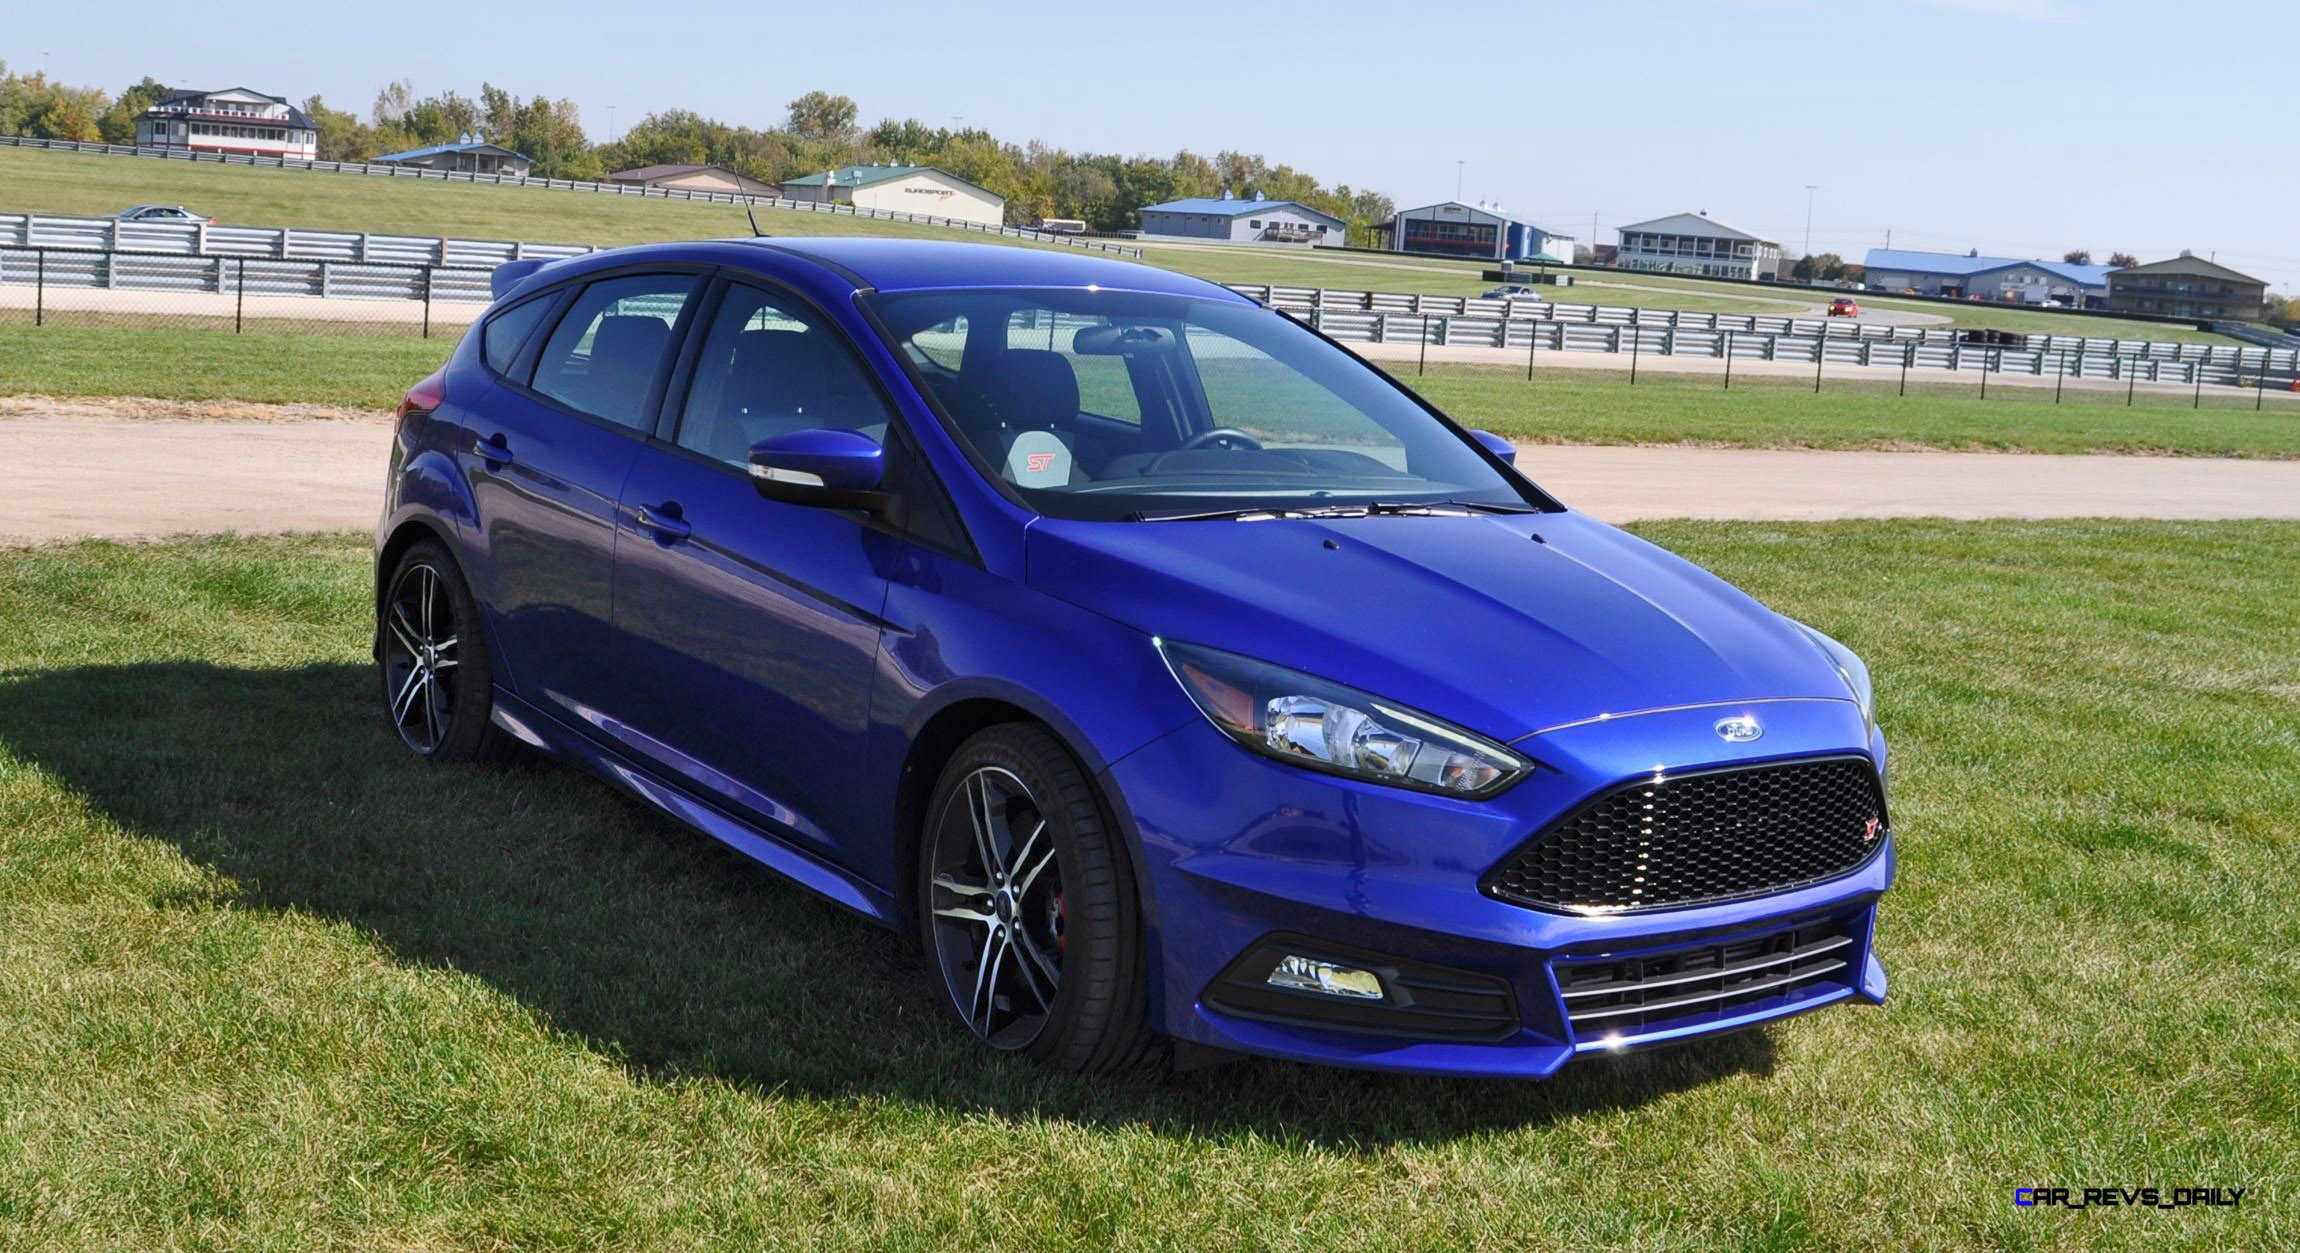 click image to open full size image - Ford Focus St 2015 Blue